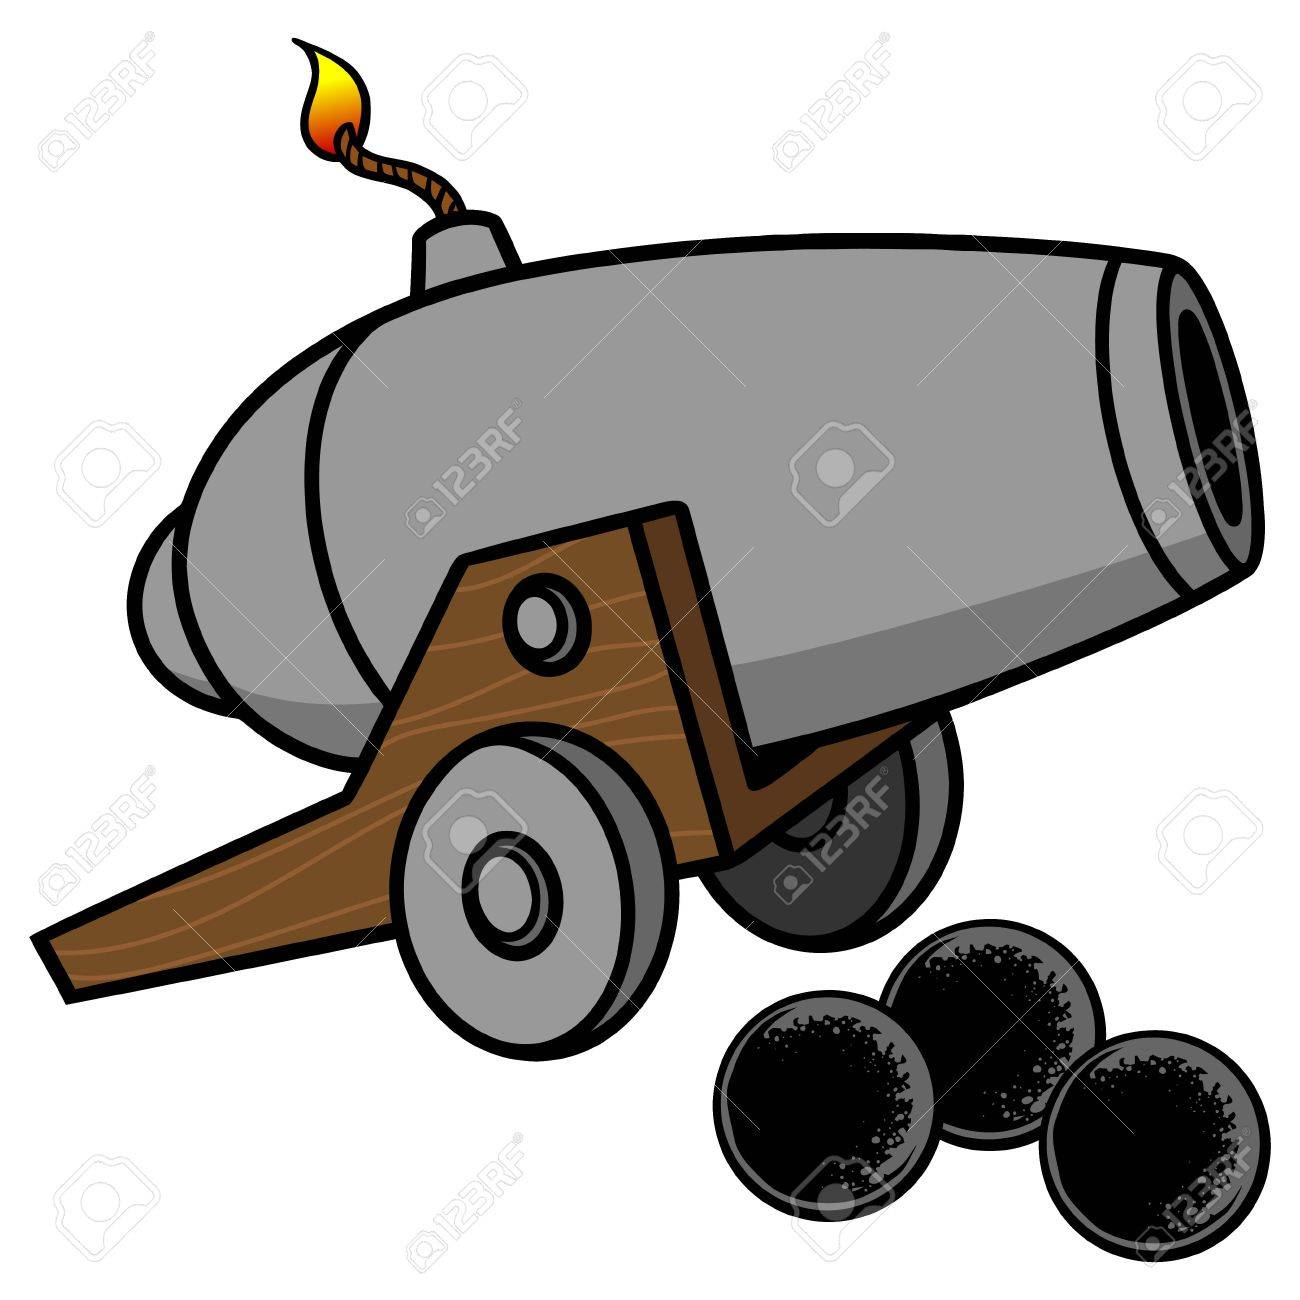 cannon royalty free cliparts vectors and stock illustration image rh 123rf com clip art canon clip art canon